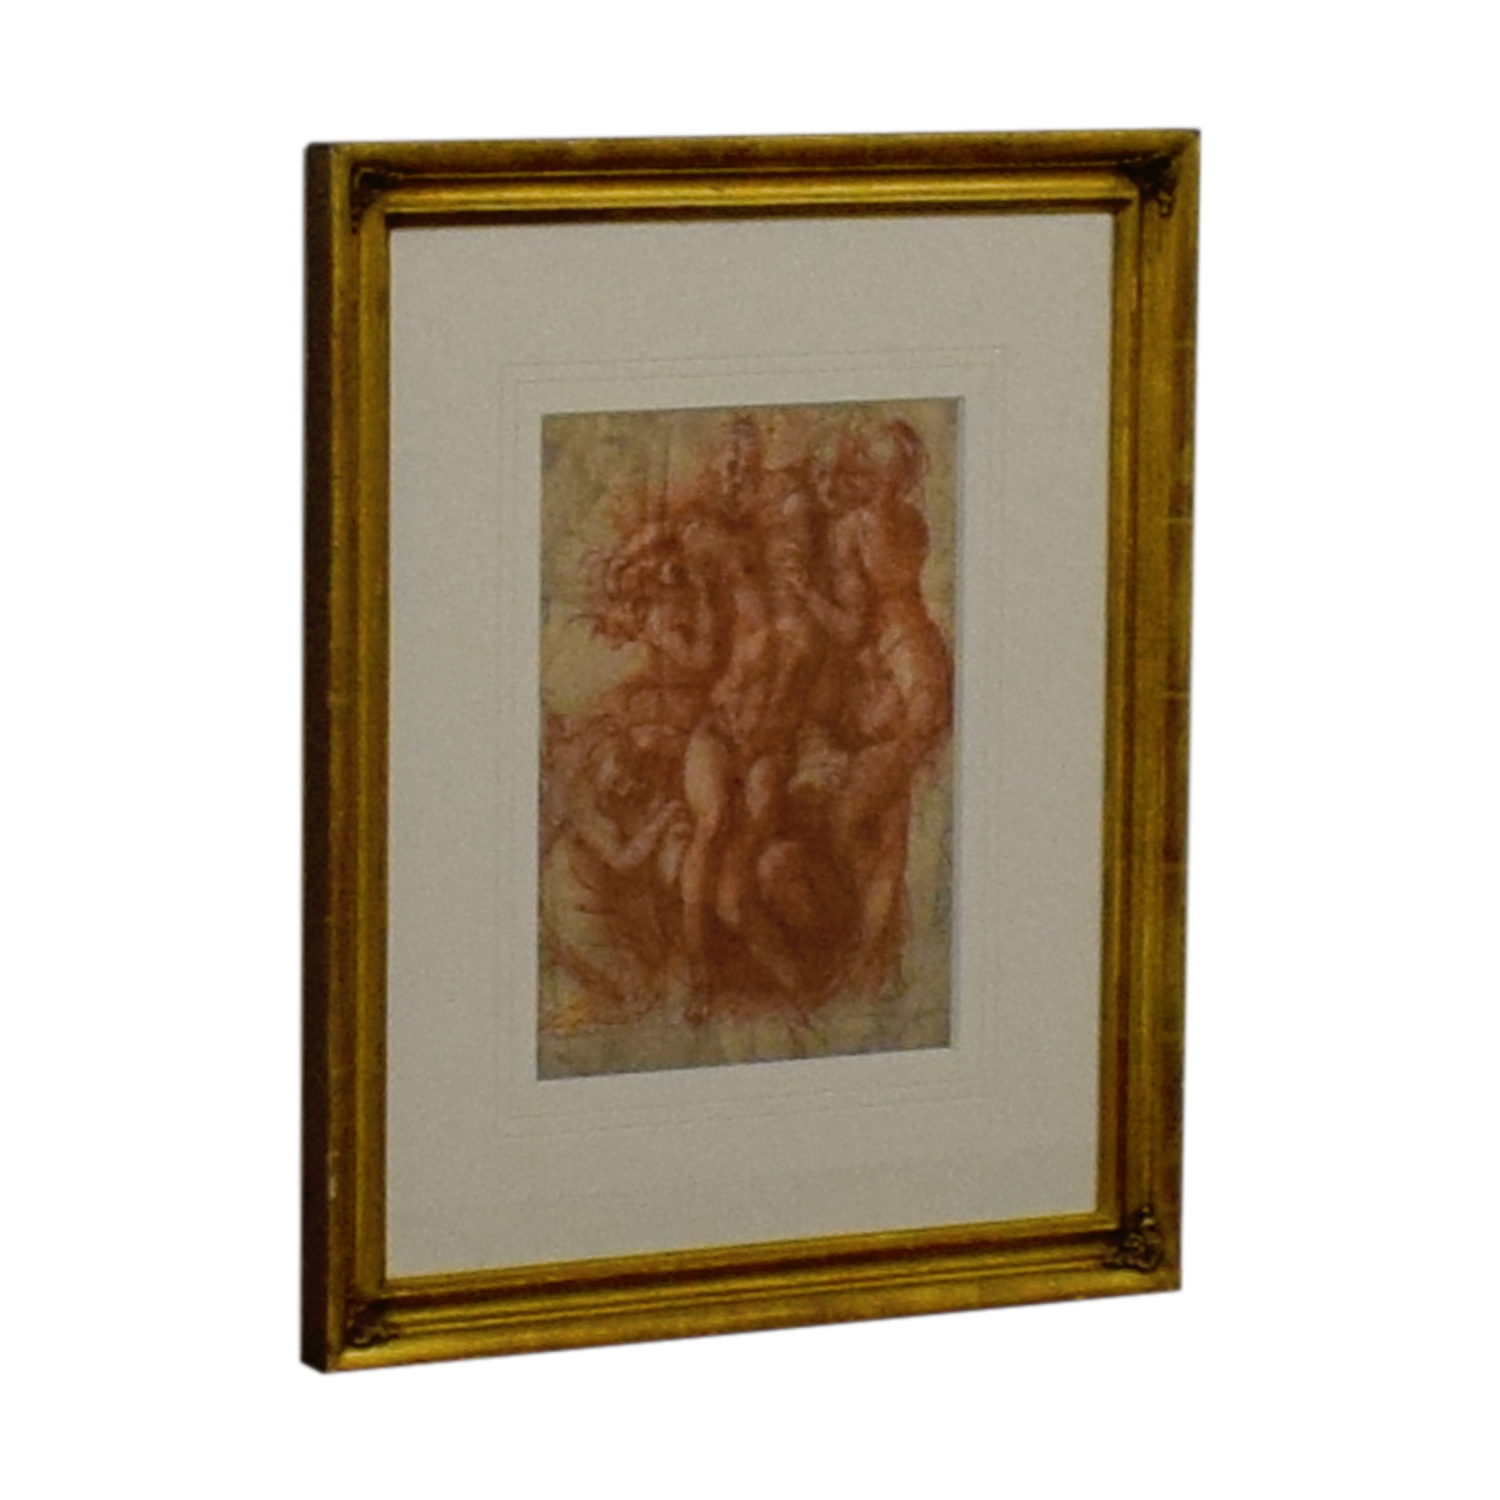 Nude Sketch in Gold Frame Artwork / Wall Art